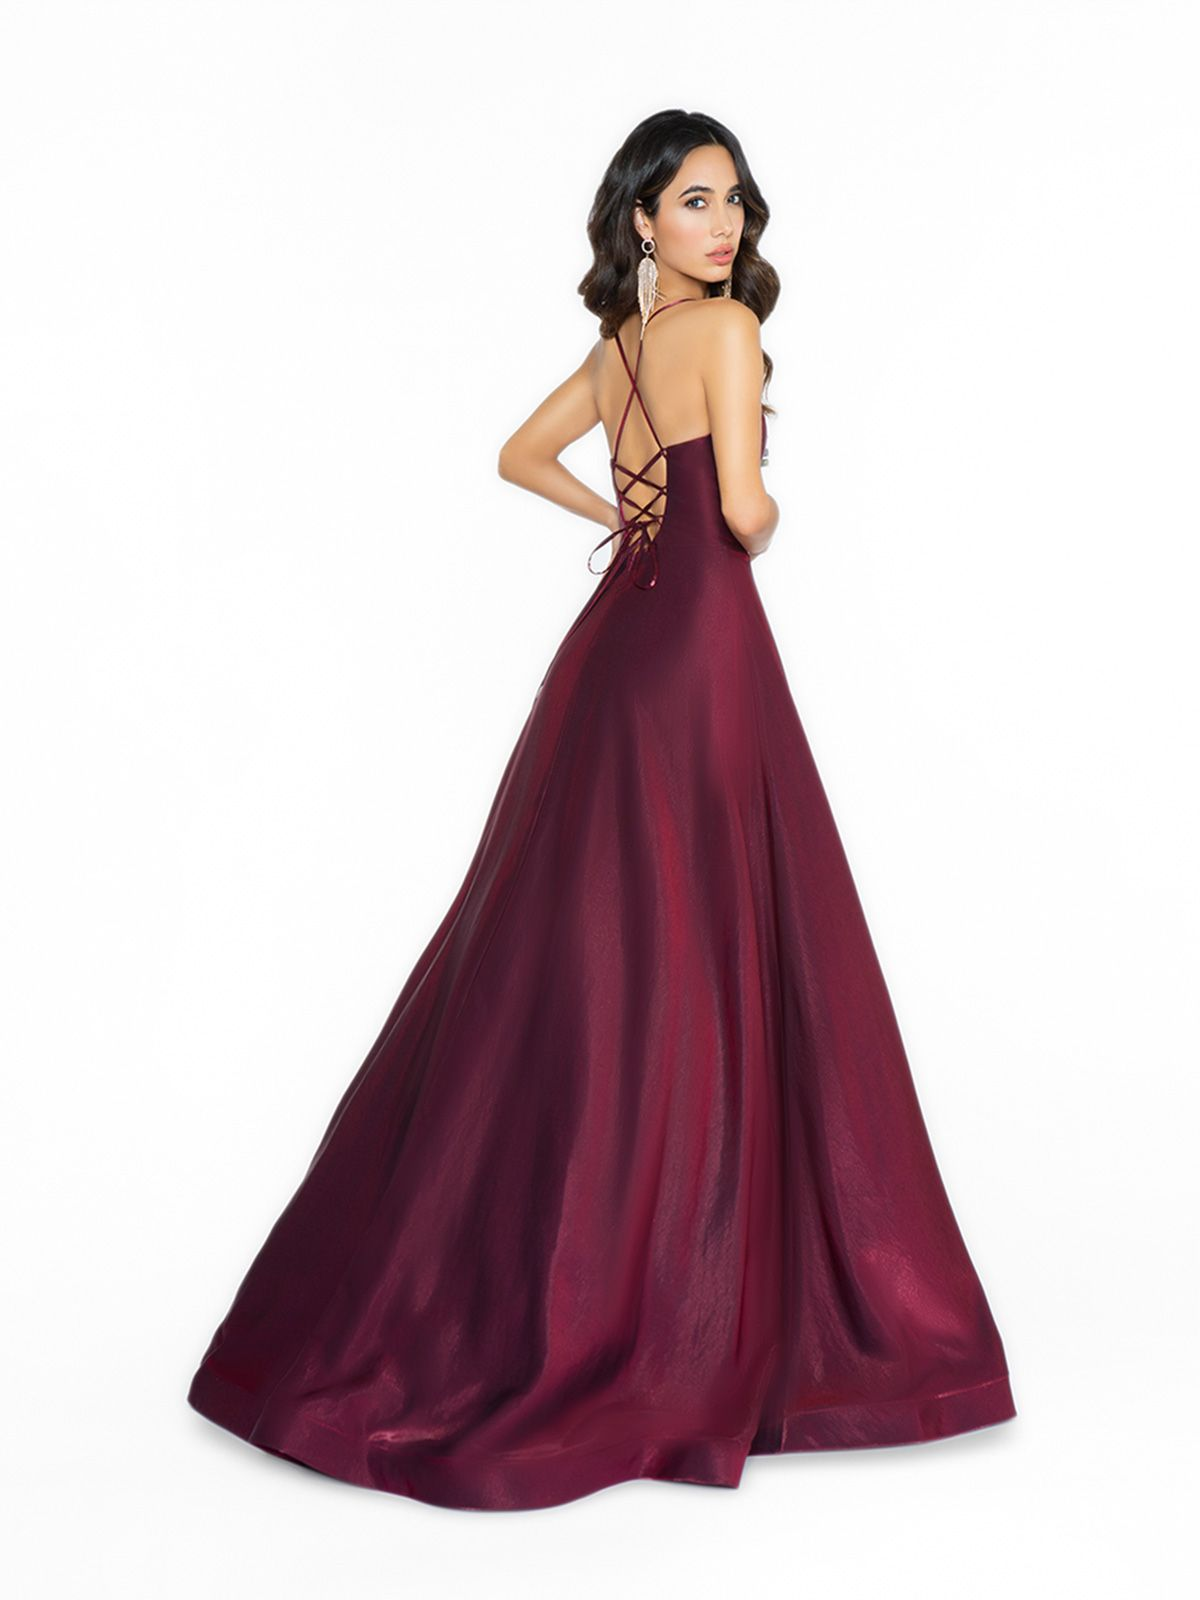 Style 3717ry Satin A Line Gown With Asymmetrical Hem A Line Gown Prom Dresses Dresses [ 1600 x 1200 Pixel ]